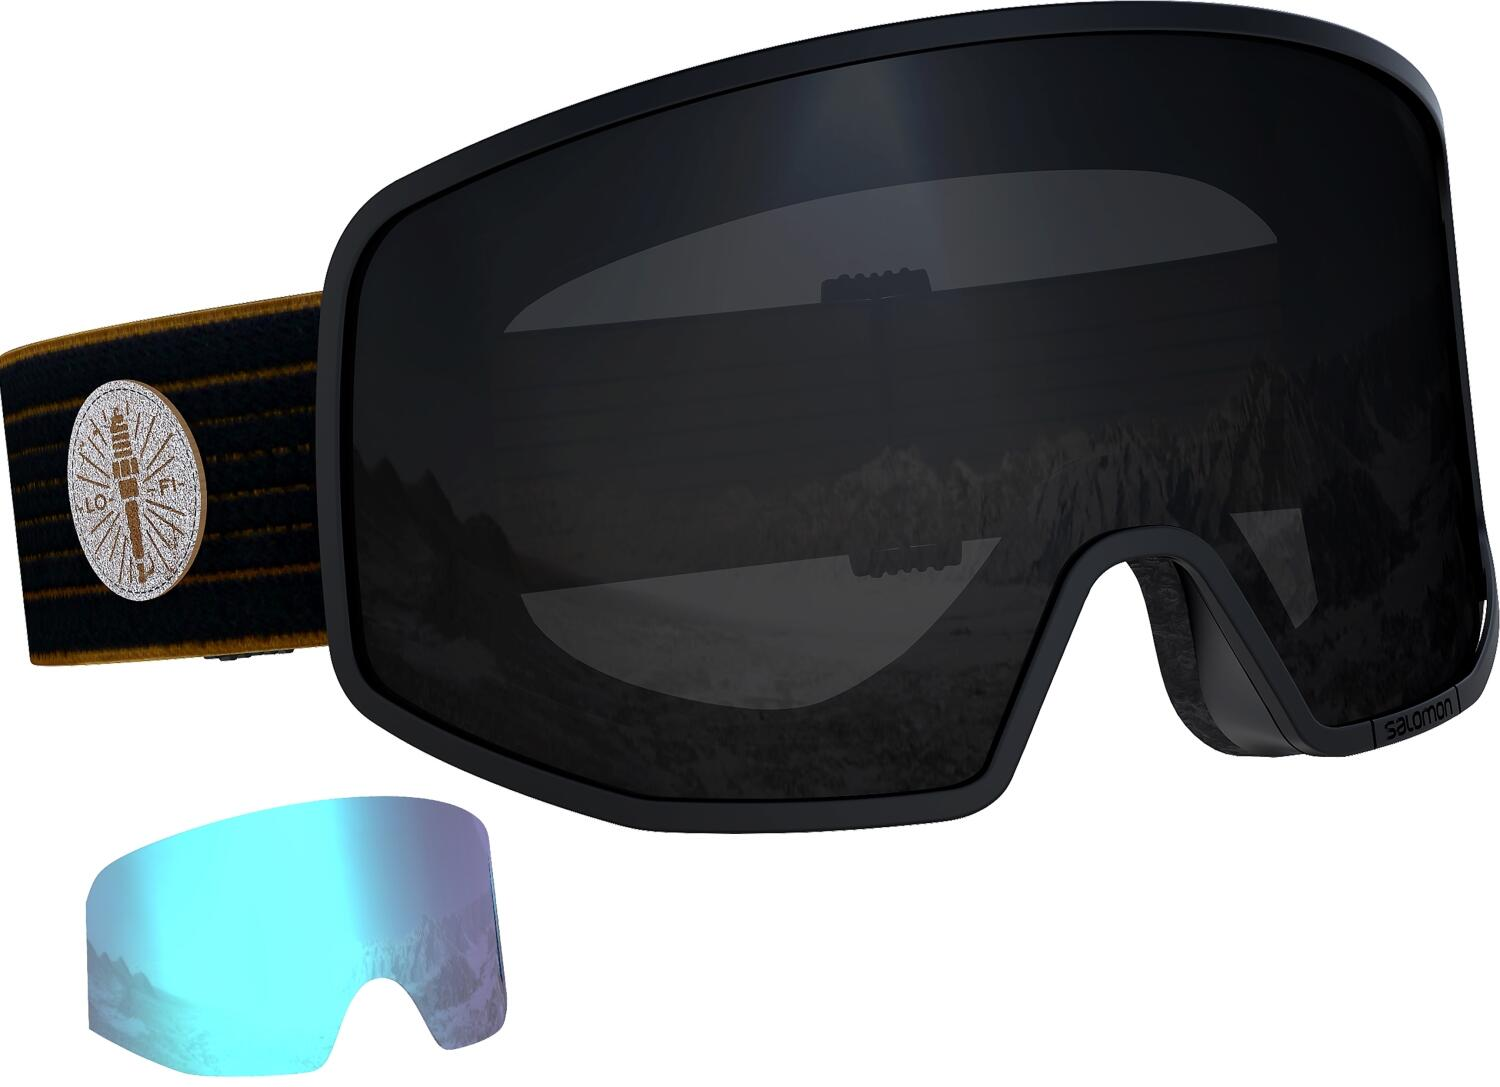 salomon-lo-fi-skibrille-farbe-caf-egrave-racer-scheibe-black-extra-scheibe-light-blue-